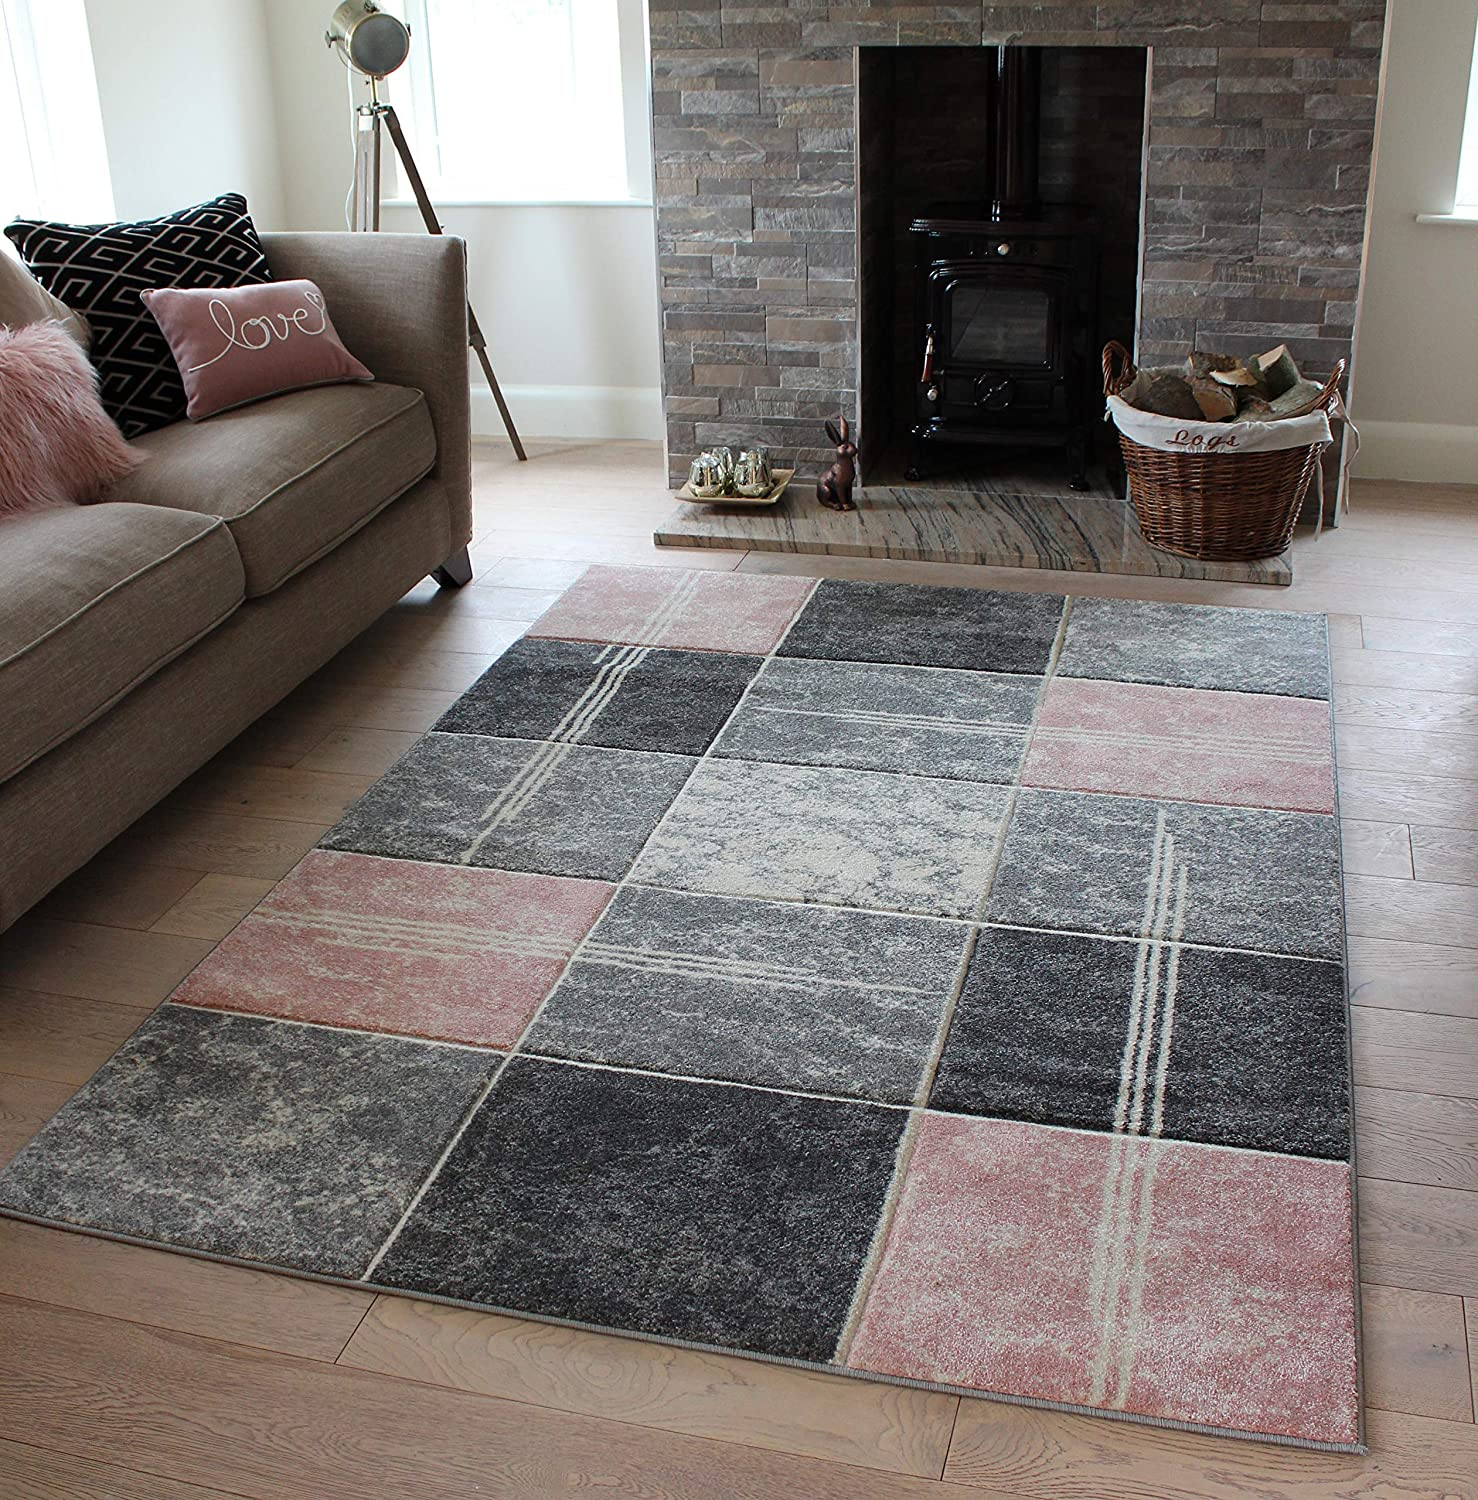 New Beautiful Thick High Quality /& Modern Squares Design Soft Rugs